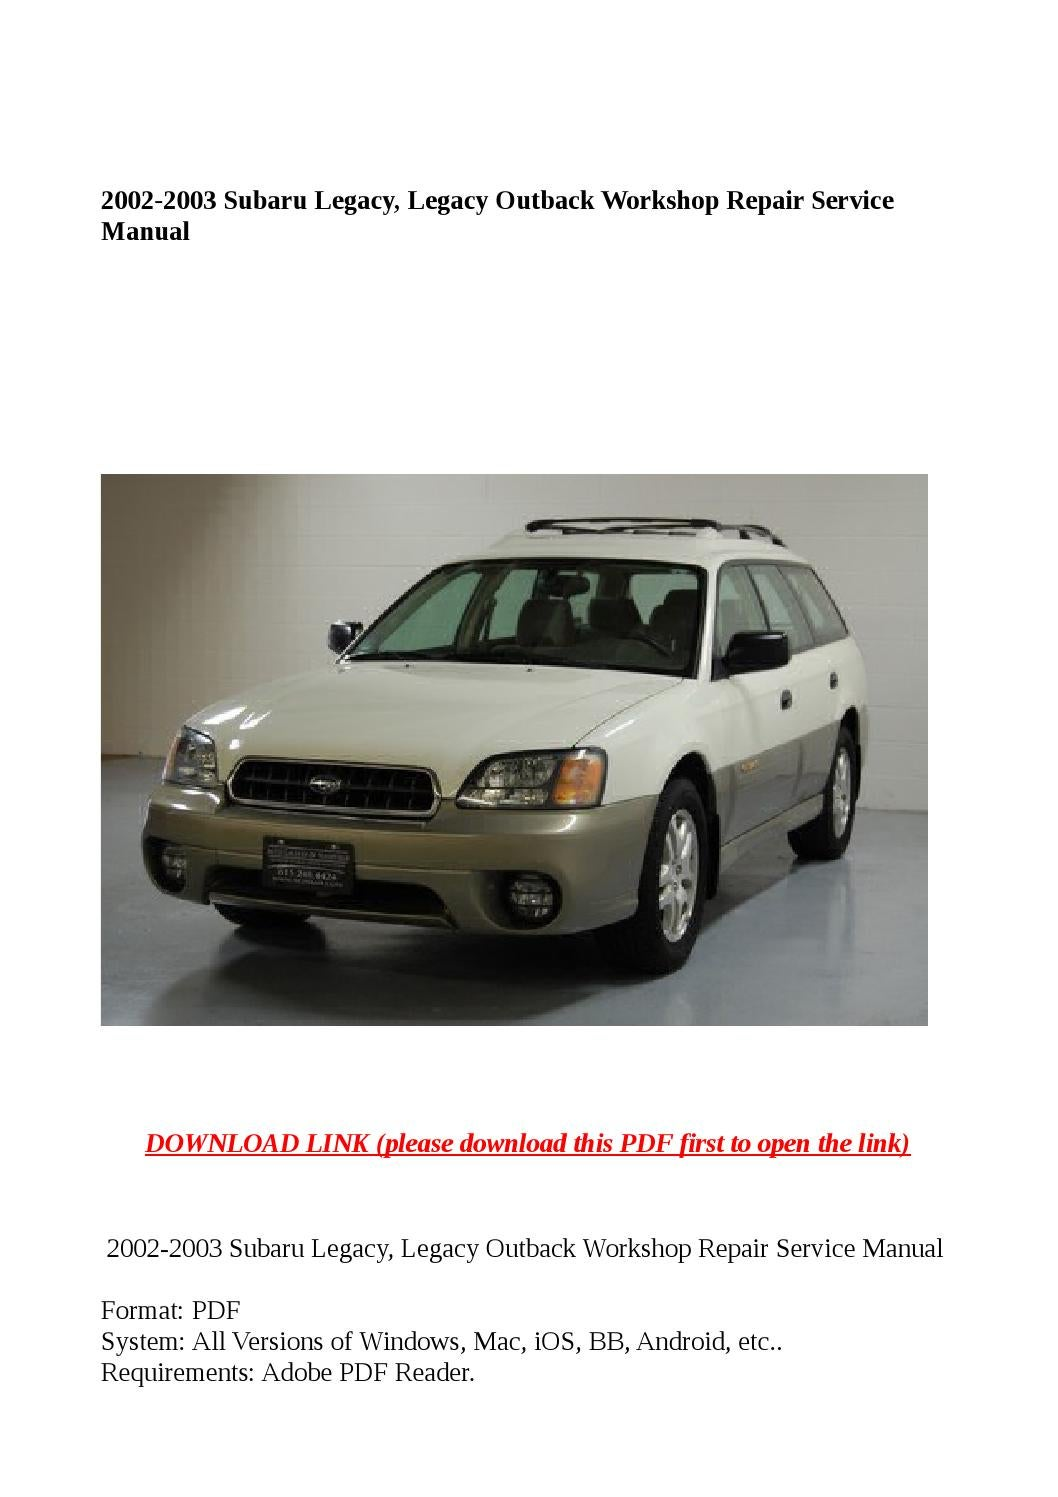 Subaru Impreza Service Repair Manual 2002 2006 Download Auto 1979 Vespa Px200 Fuse Box Chilton Car Manuals Free